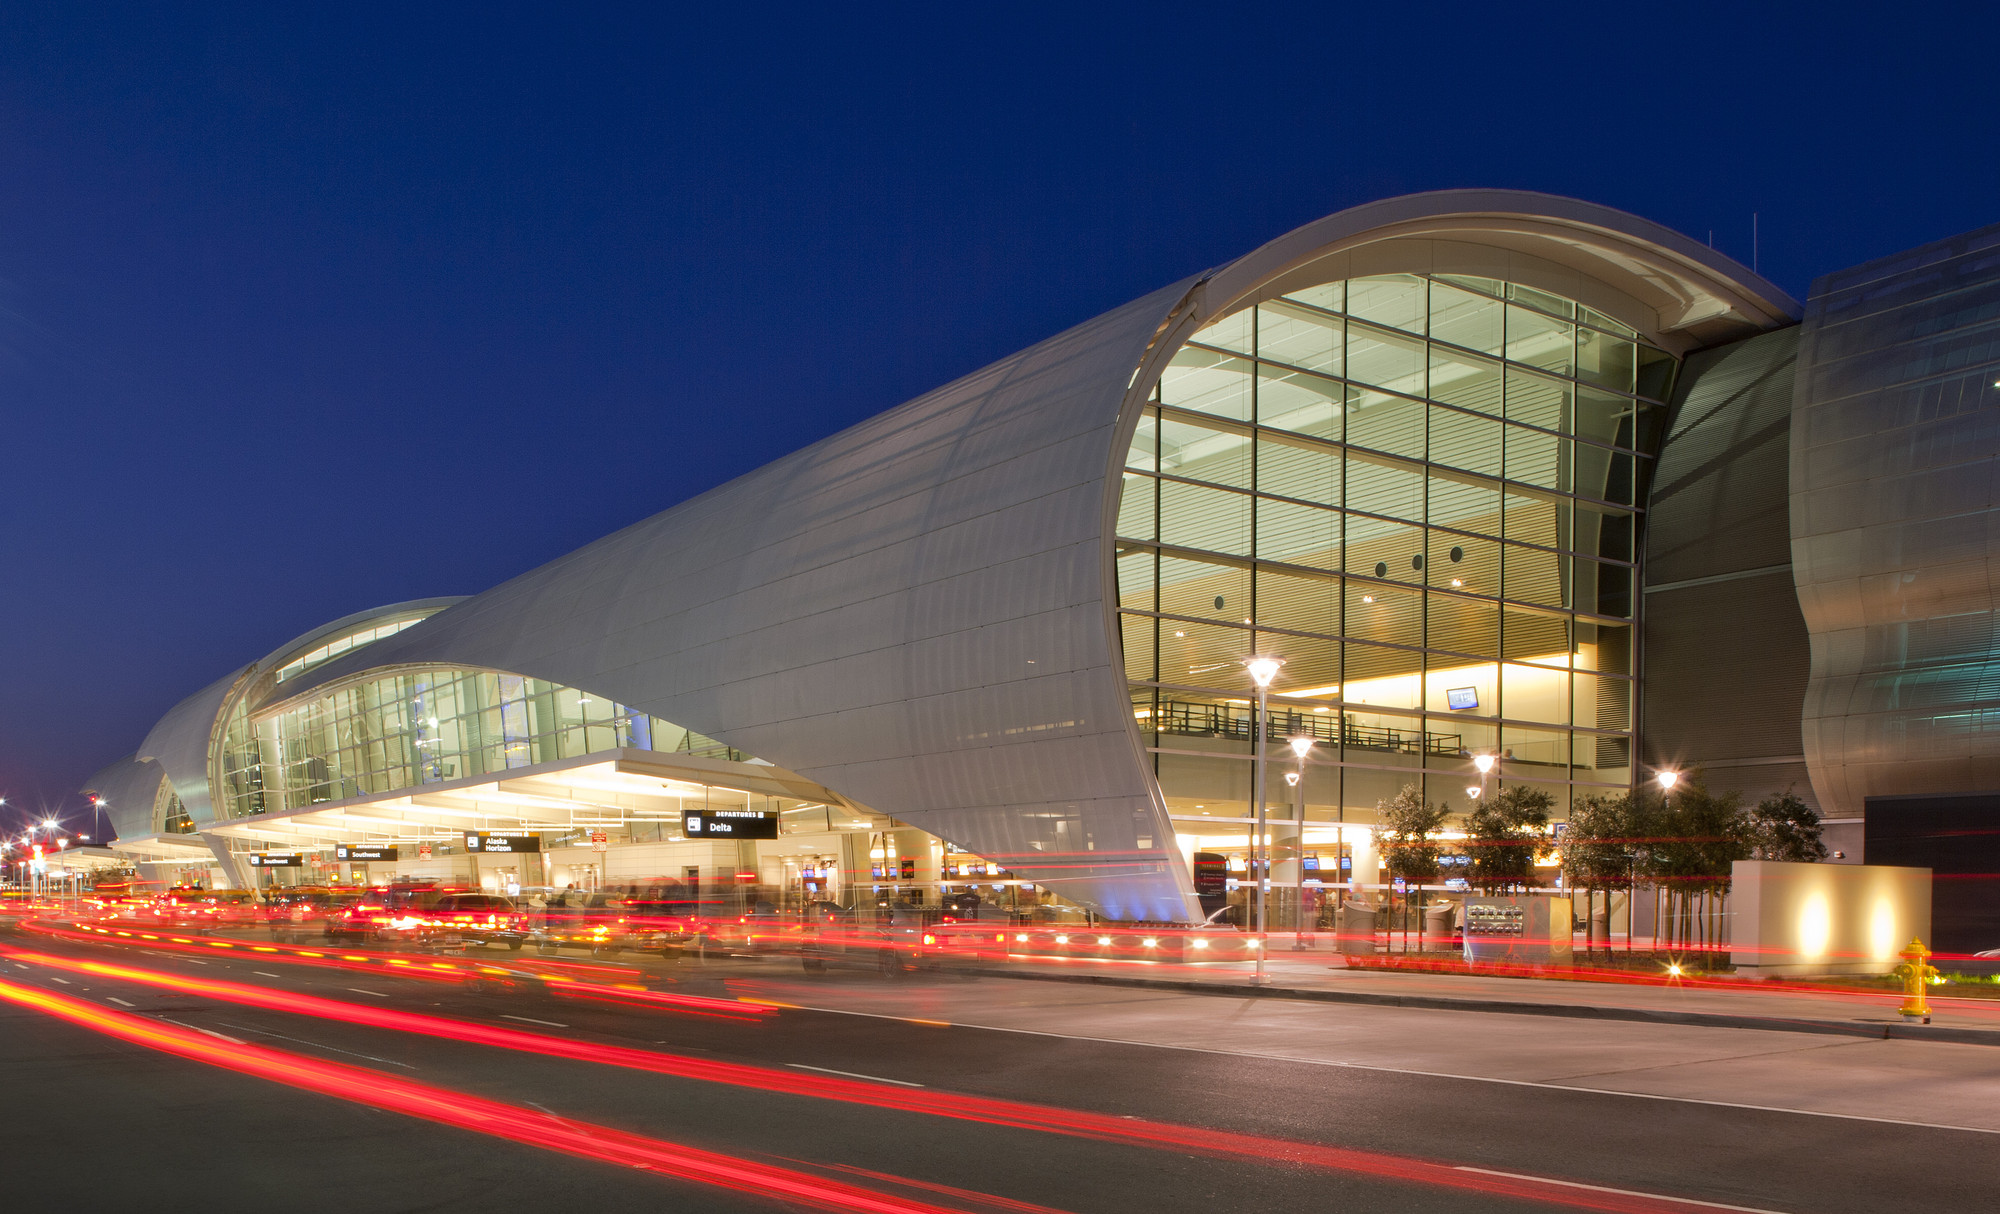 Man arrested at San Jose Airport after claiming to swallow explosive device